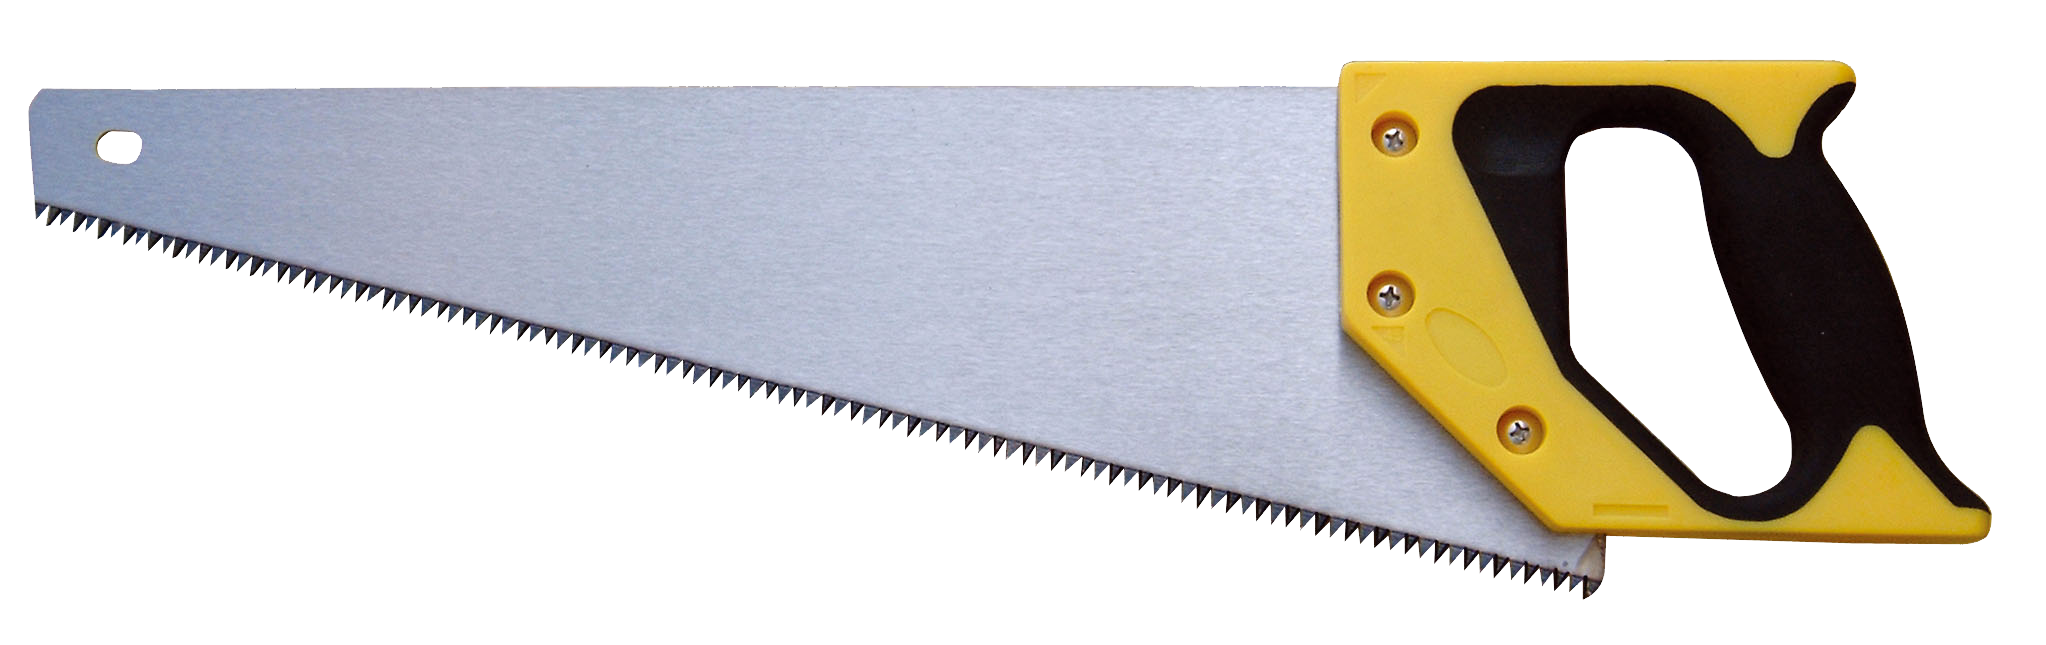 Download Hand Saw PNG images transparent gallery. Advertisement - Hand Saw PNG